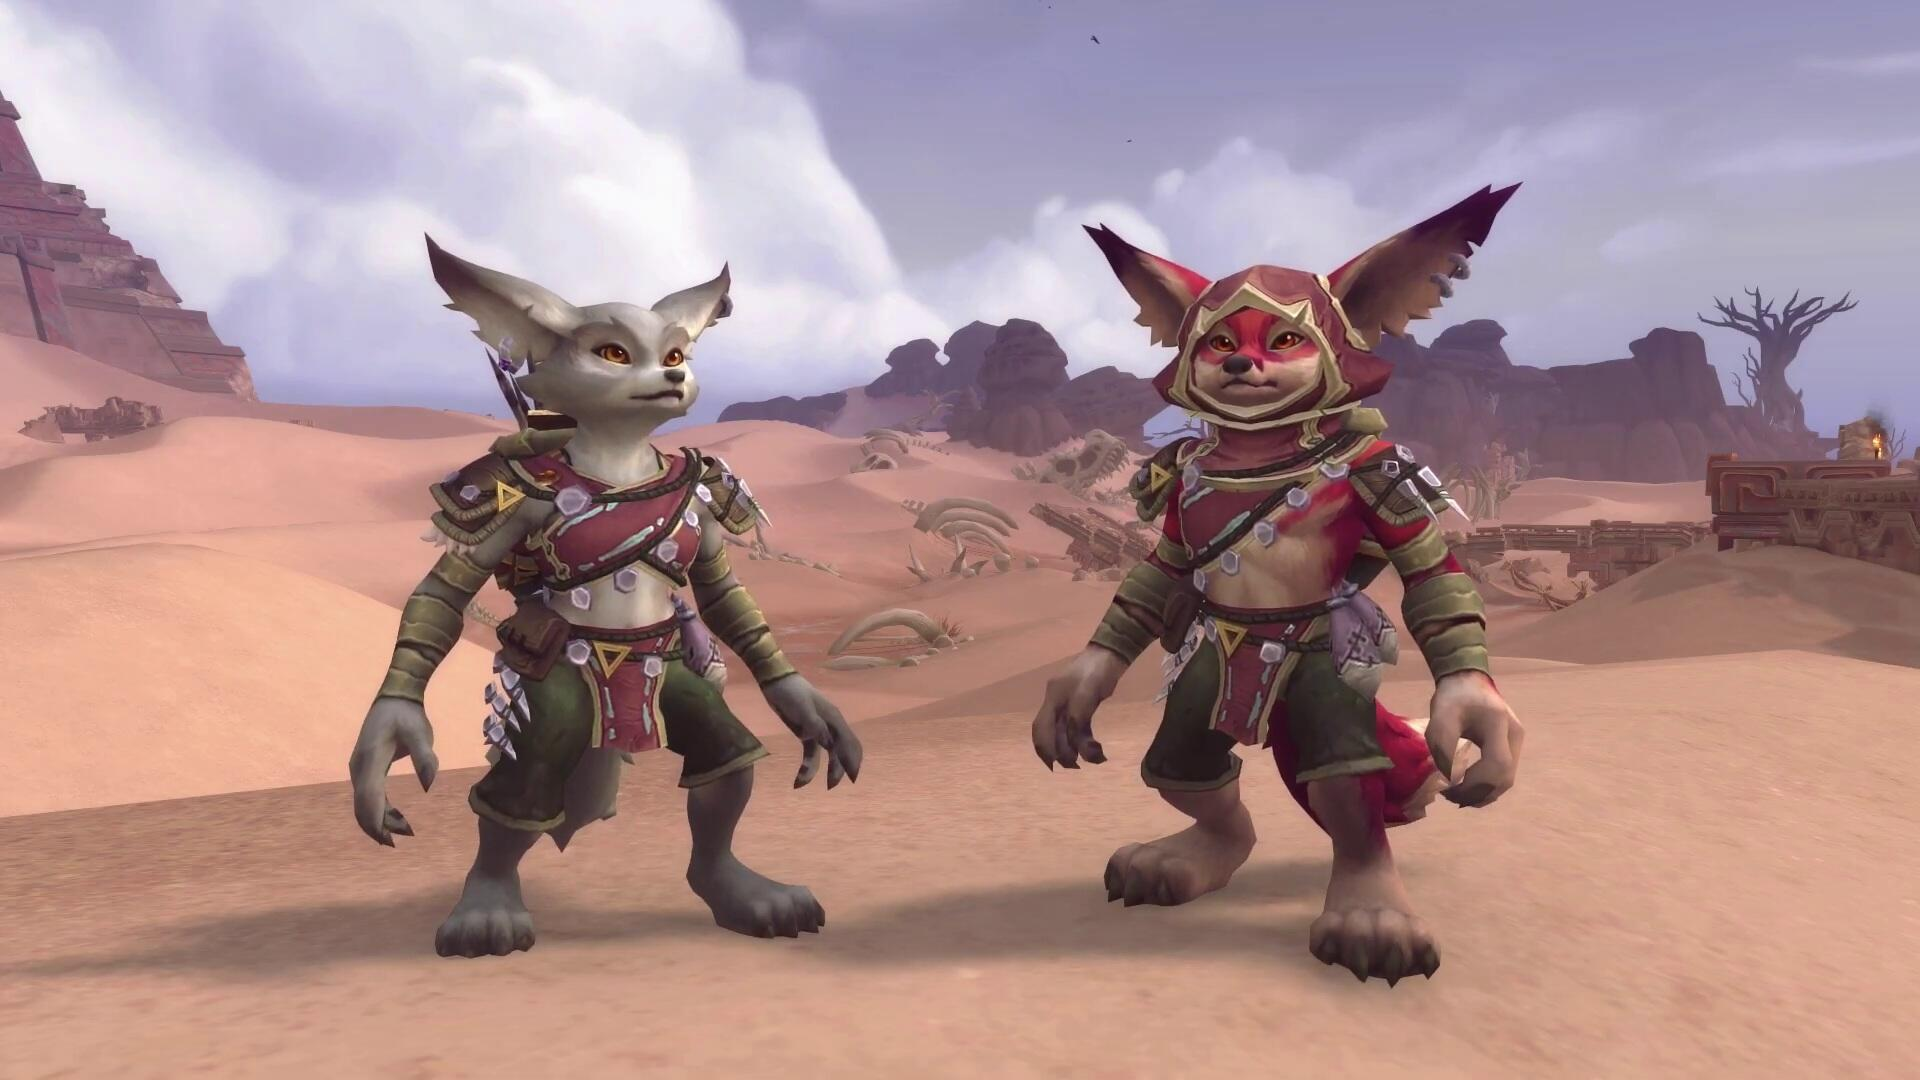 Furries Rejoice: WoW Battle for Azeroth Enlisting Vulpera for Its Next Patch